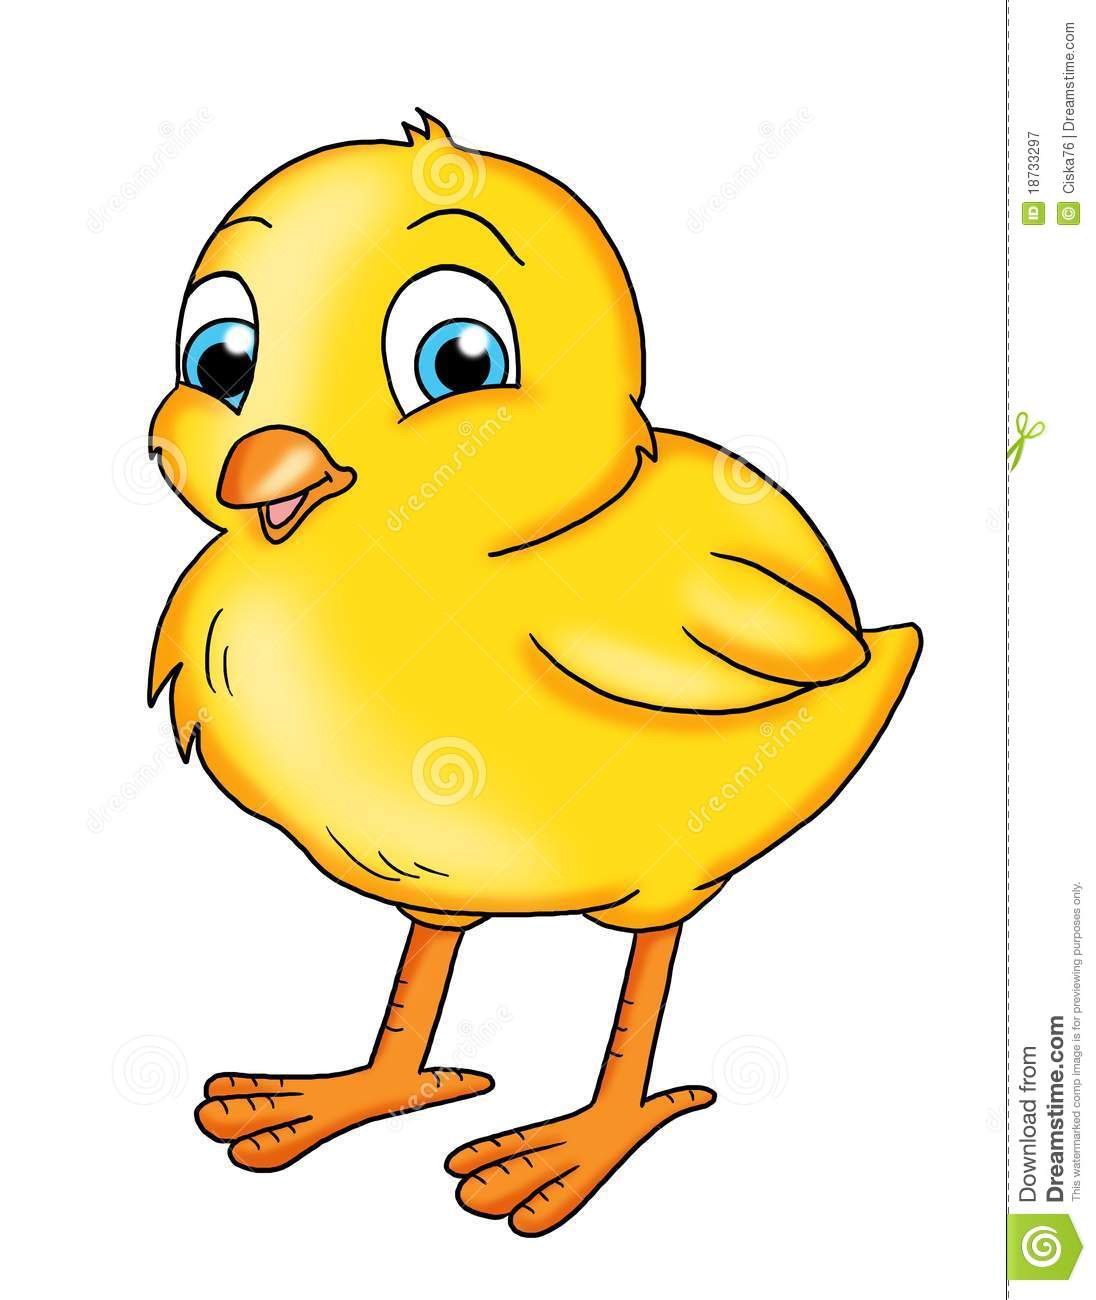 Orange free collection download. Chick clipart